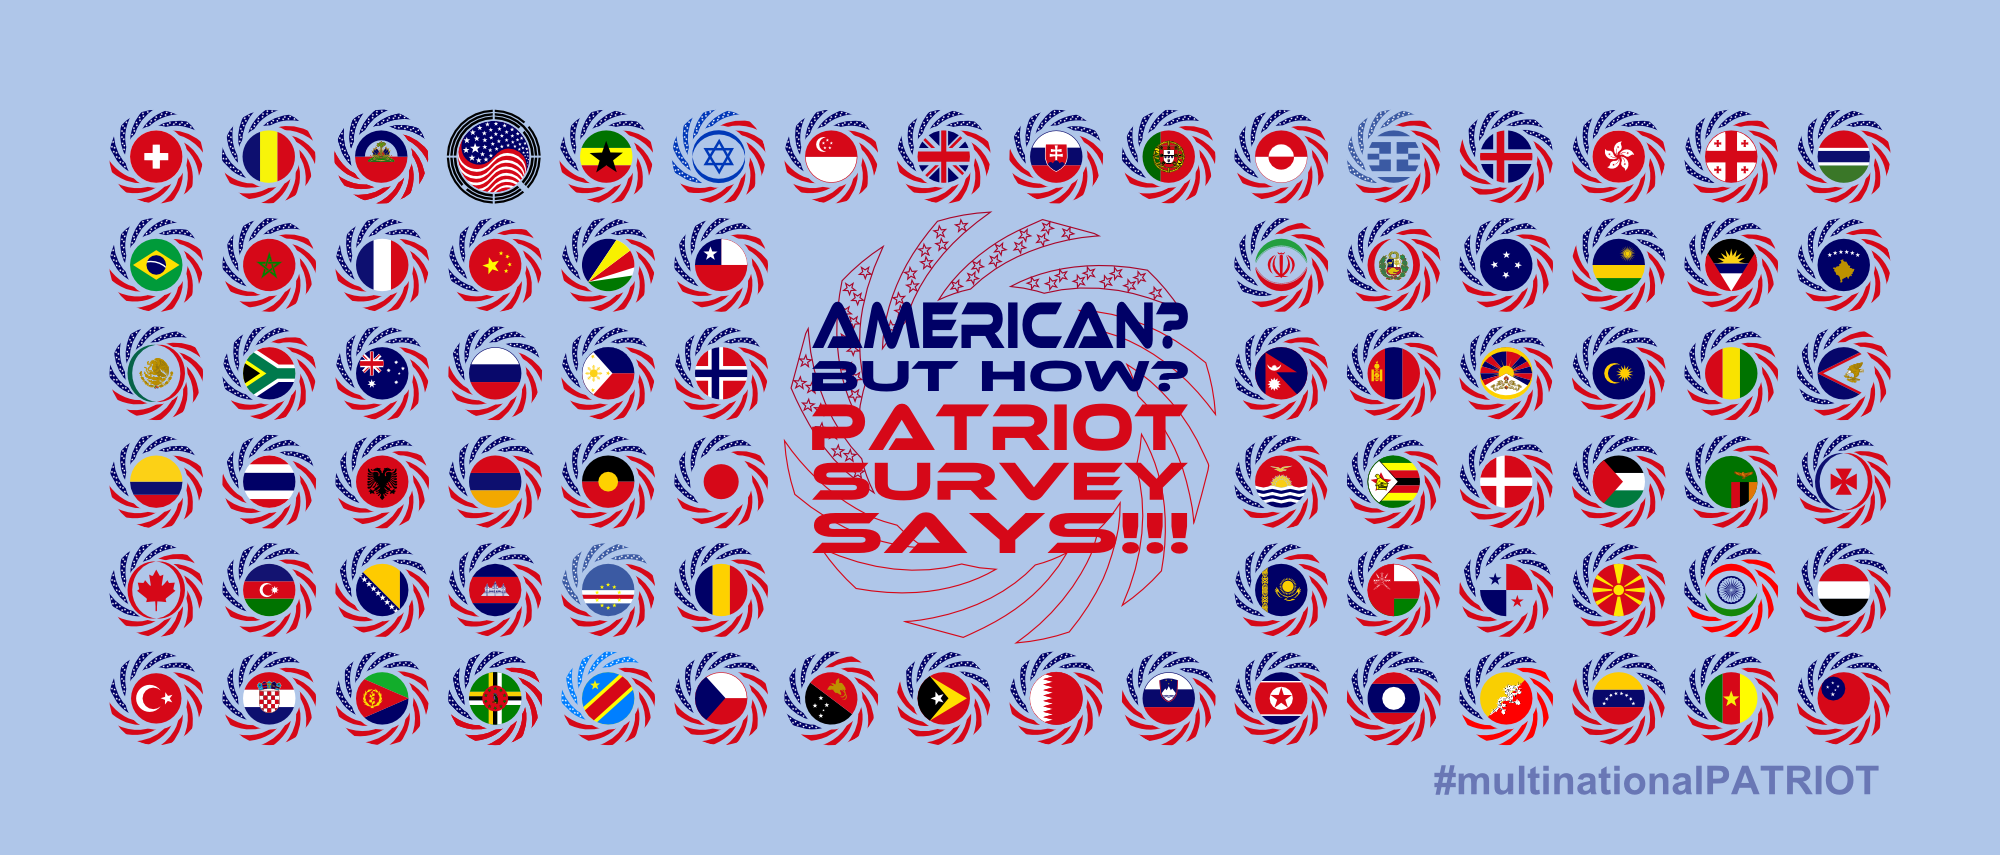 carbonfibreme_patriot_flag_link_world_patriot_survey_says_wide_banner_blue_bg.png